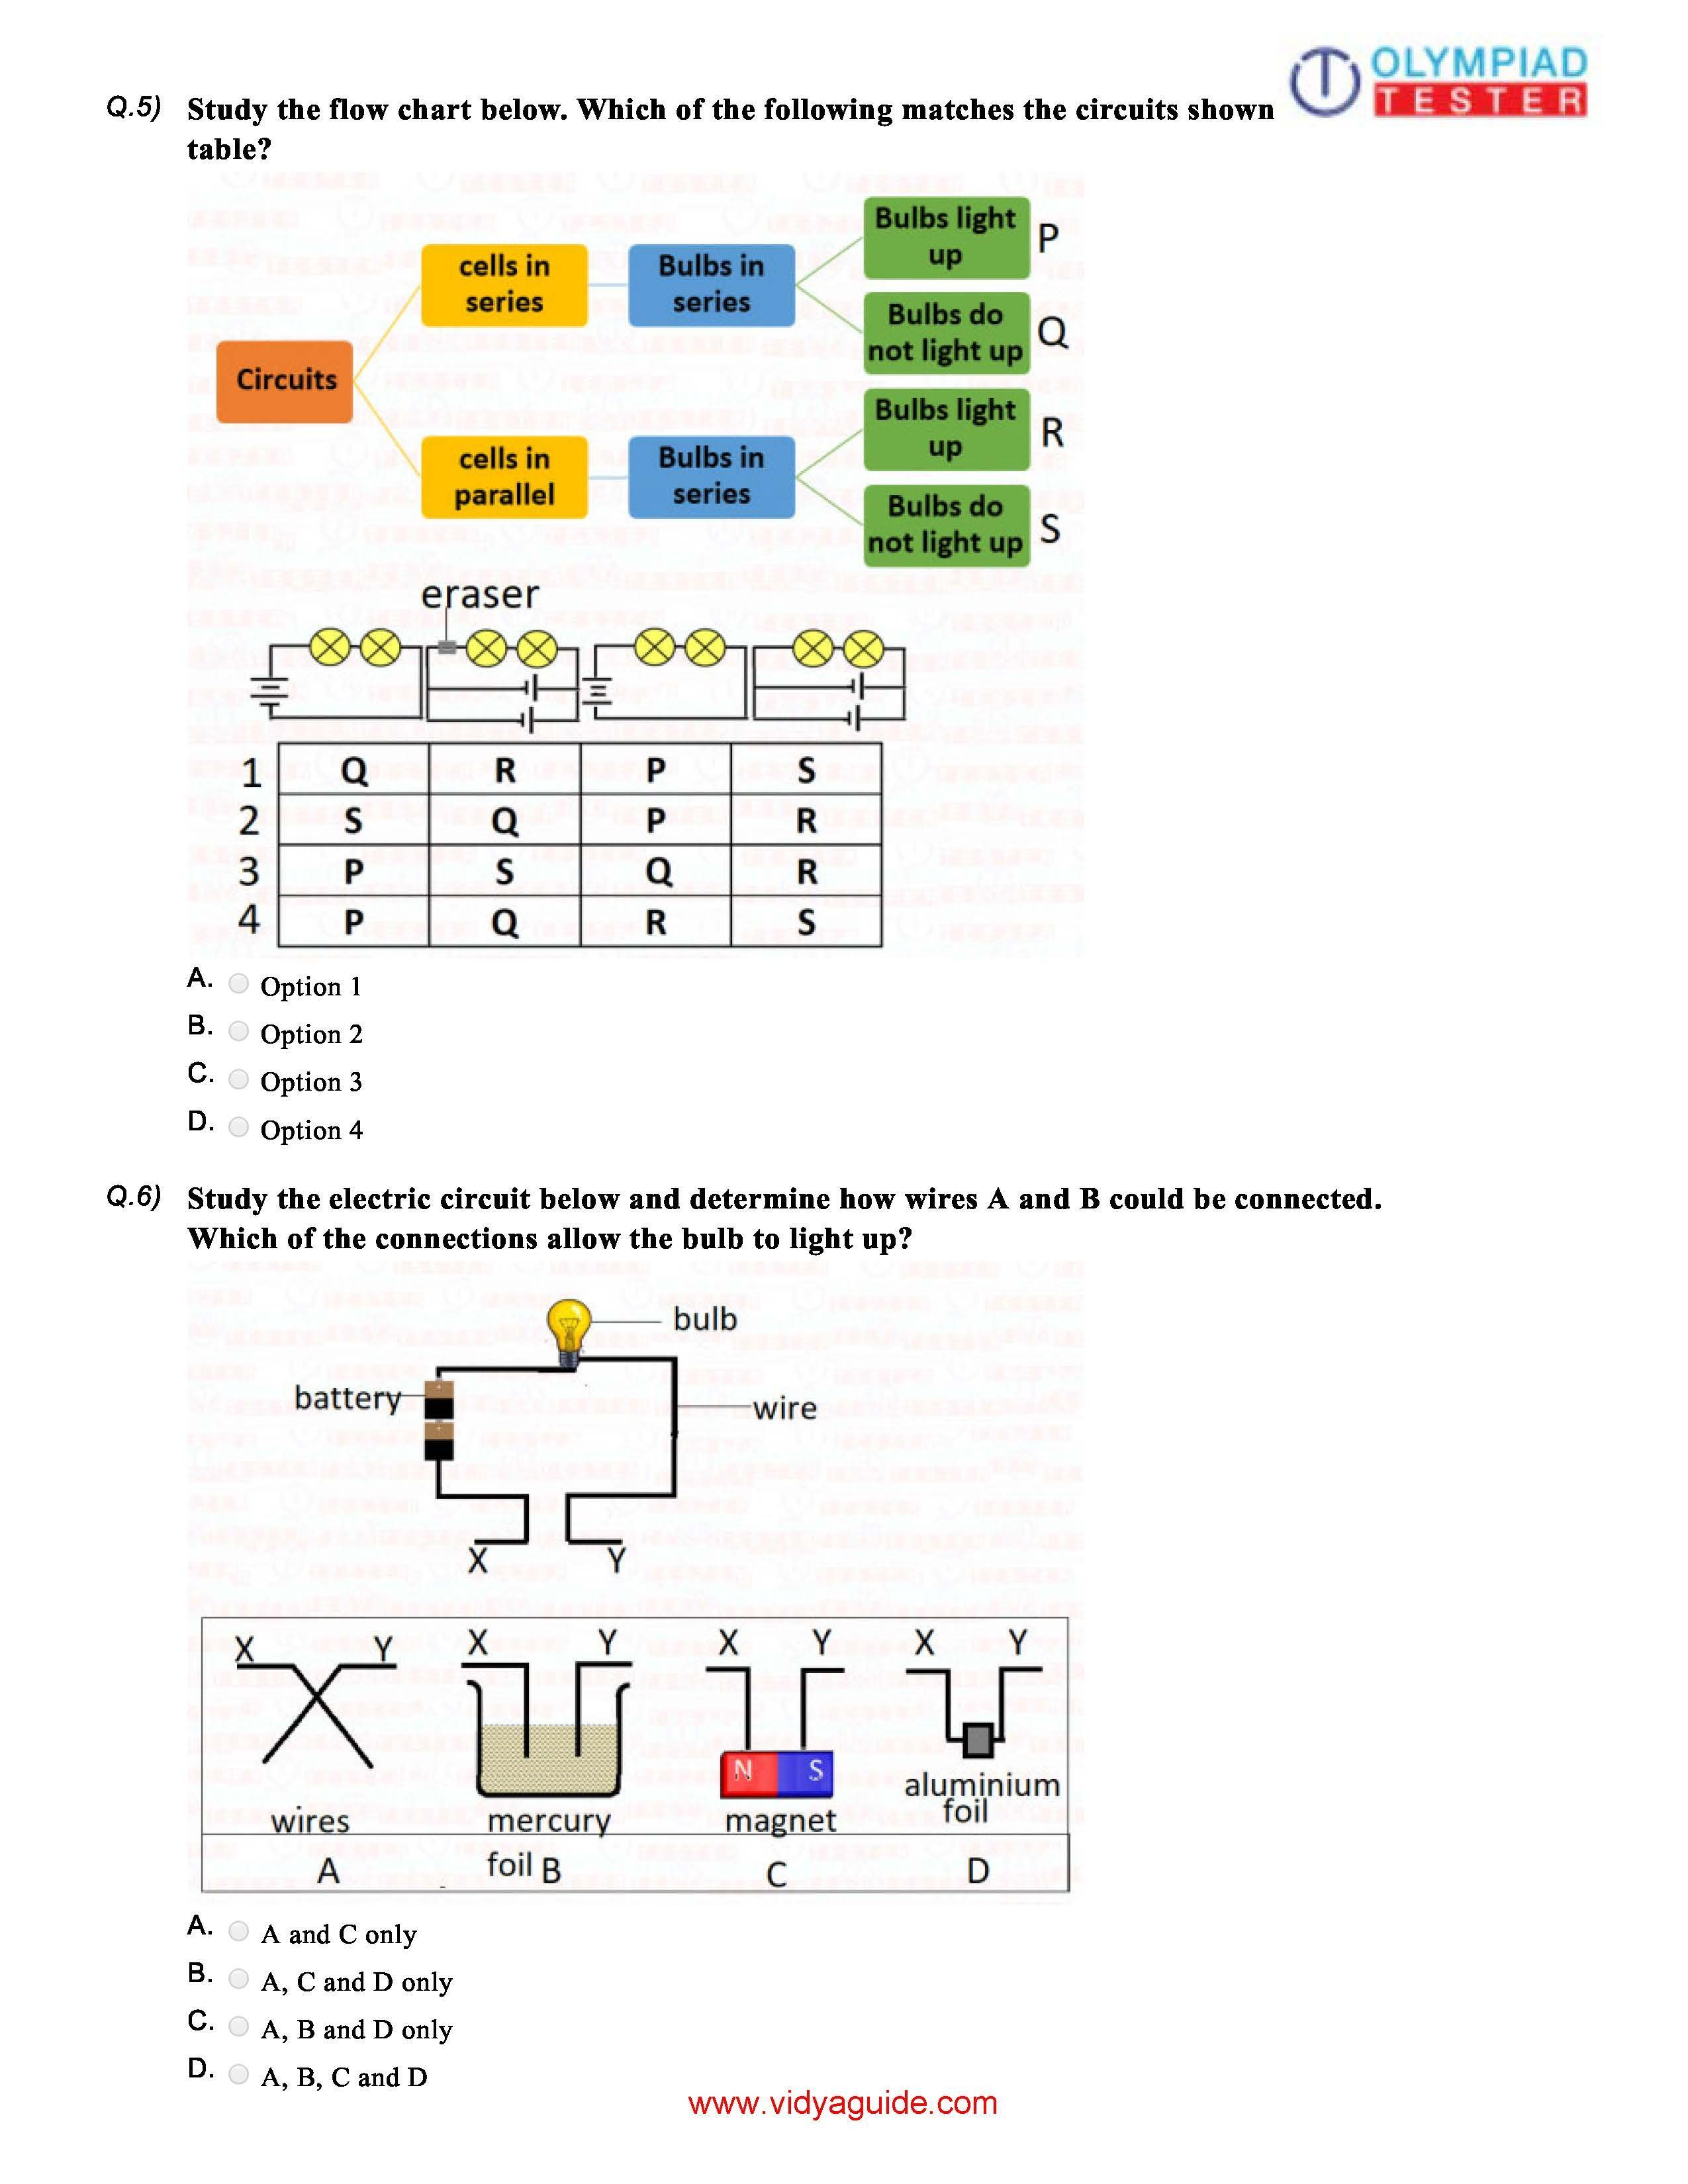 small resolution of download 12 cbse science class 6 sample papers on electricity and questions year 6 electrical diagrams 2 year 6 circuit questions year 6